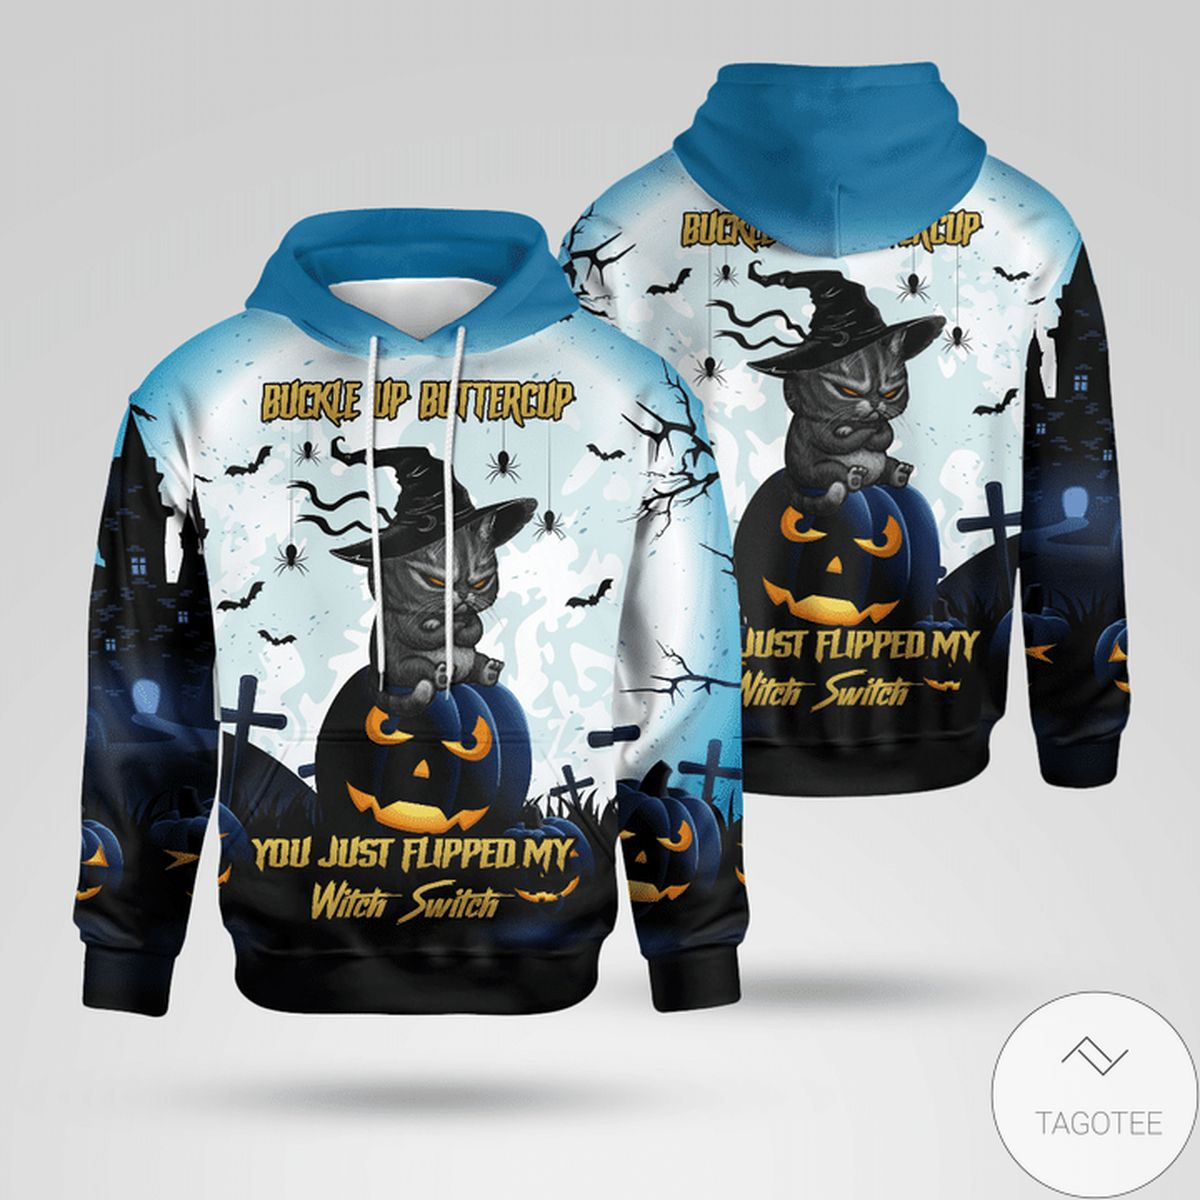 Drop Shipping Cat Buckle Up Buttercup You Just Flipped My Witch Switch Halloween Hoodie